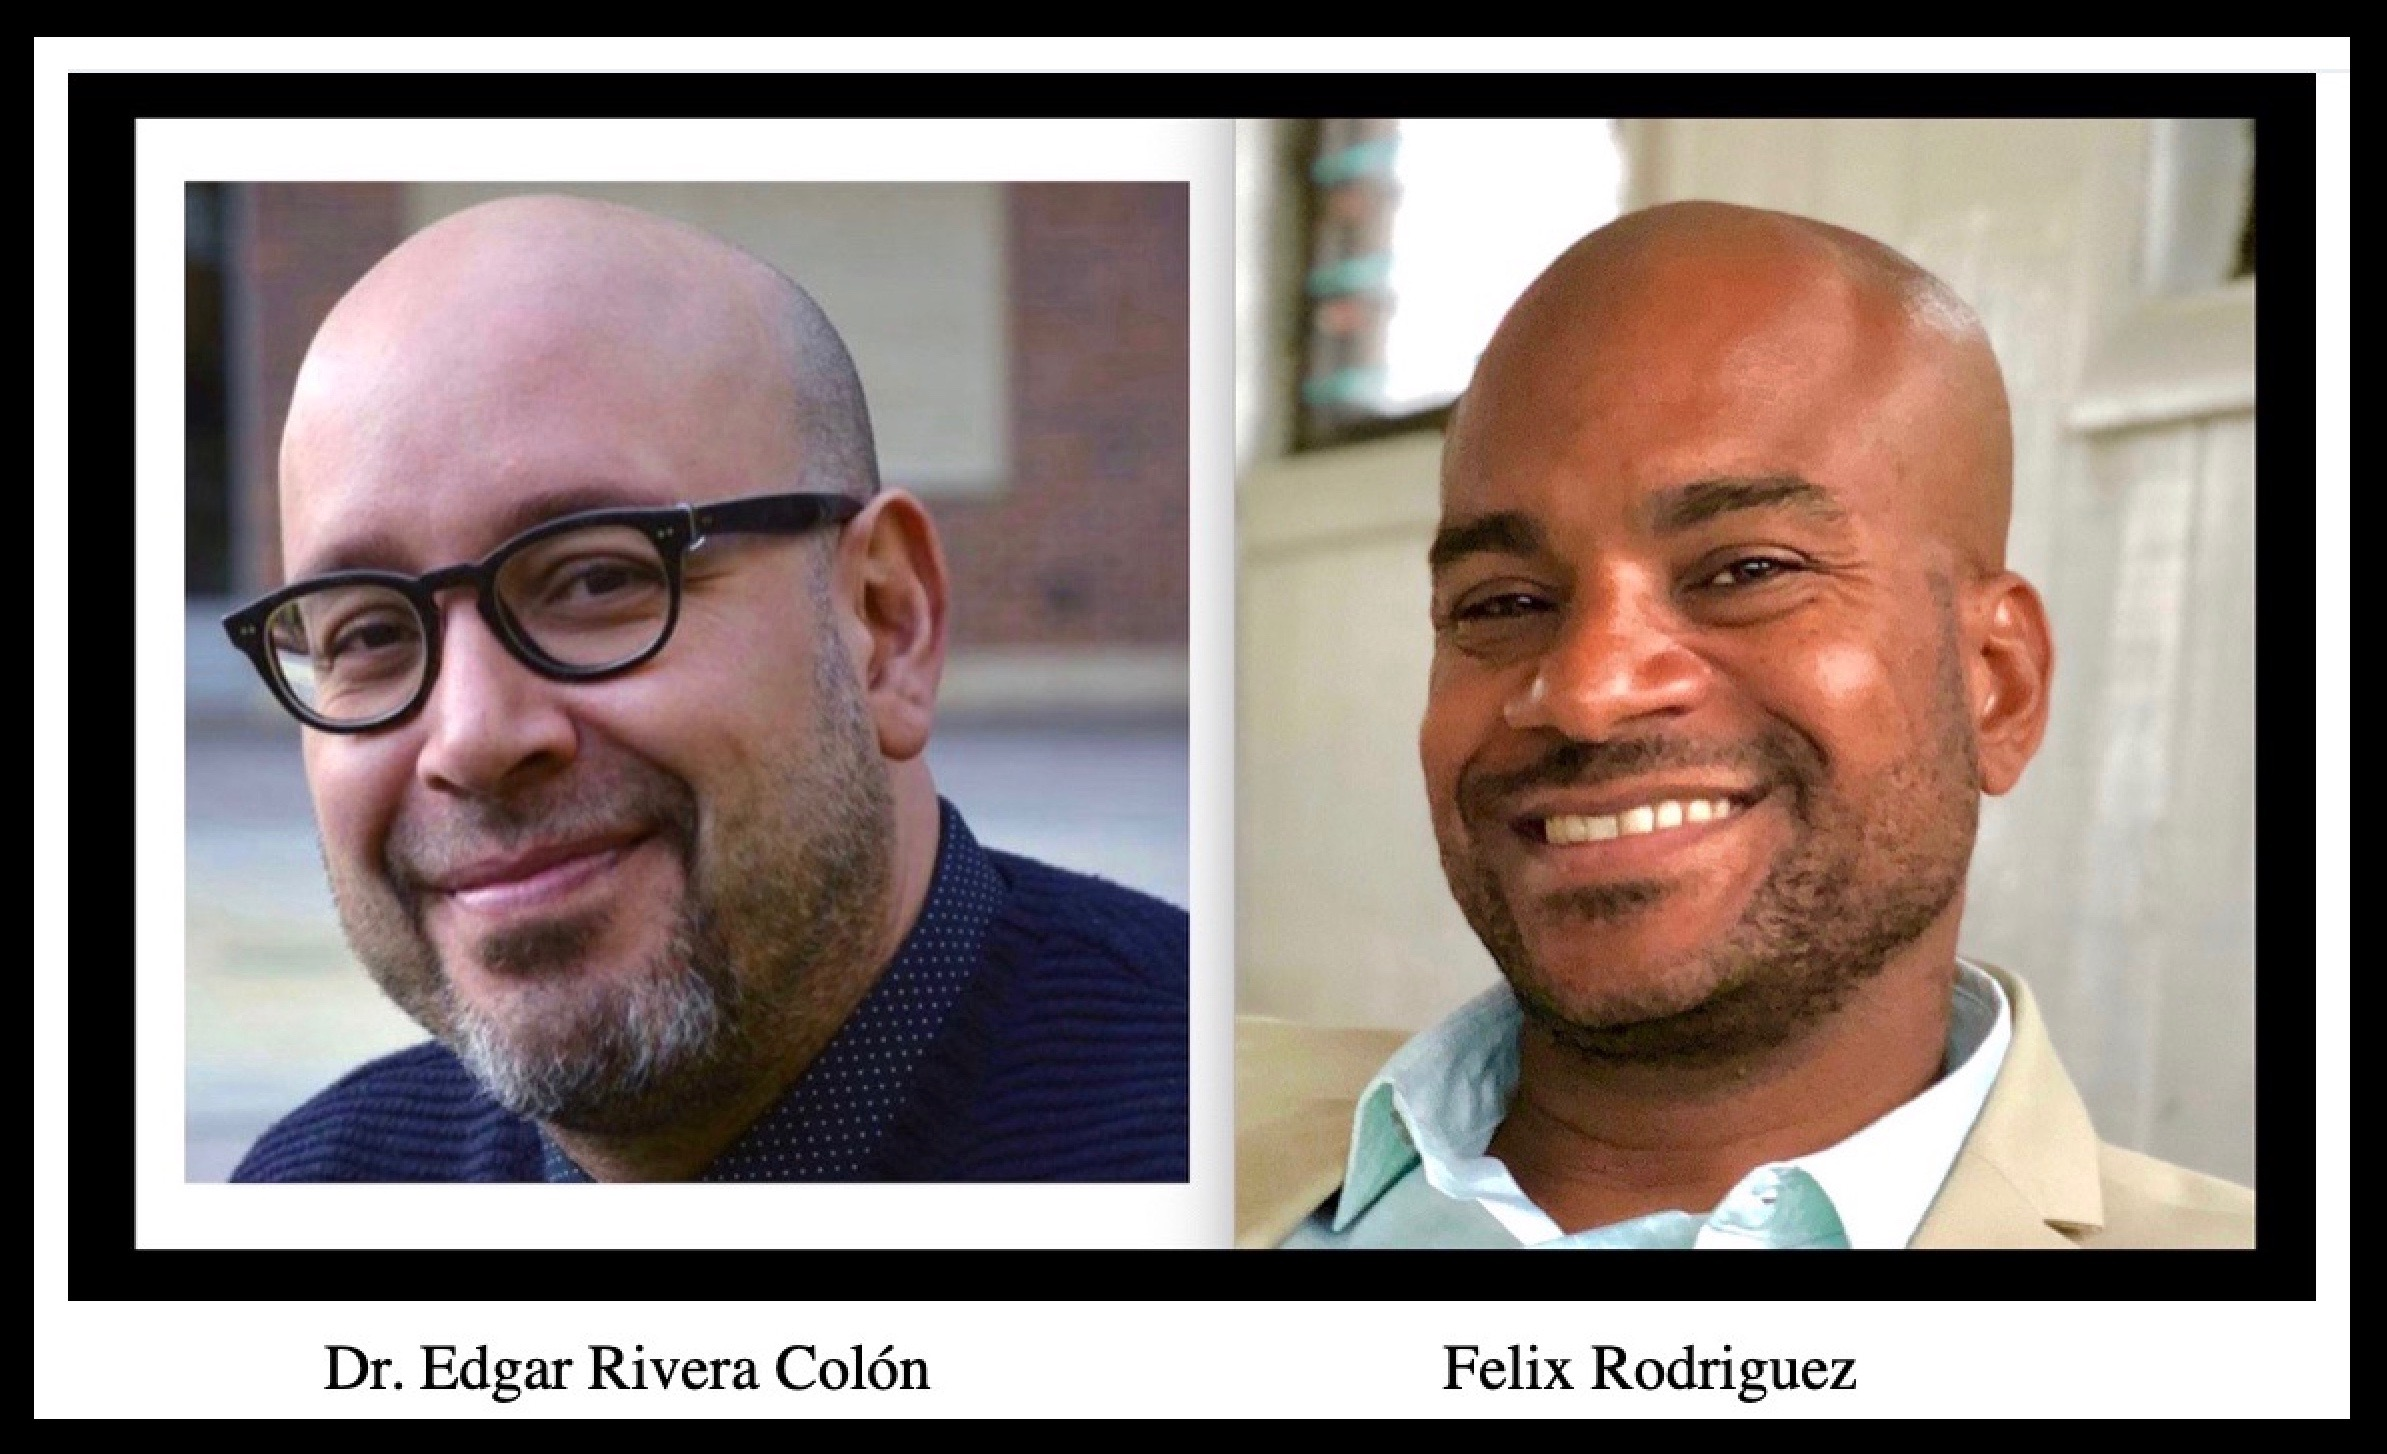 Dr Edgar Rivera Colón and Felix Rodriguez 2019-09-28 at 1.05.10 PM.jpeg